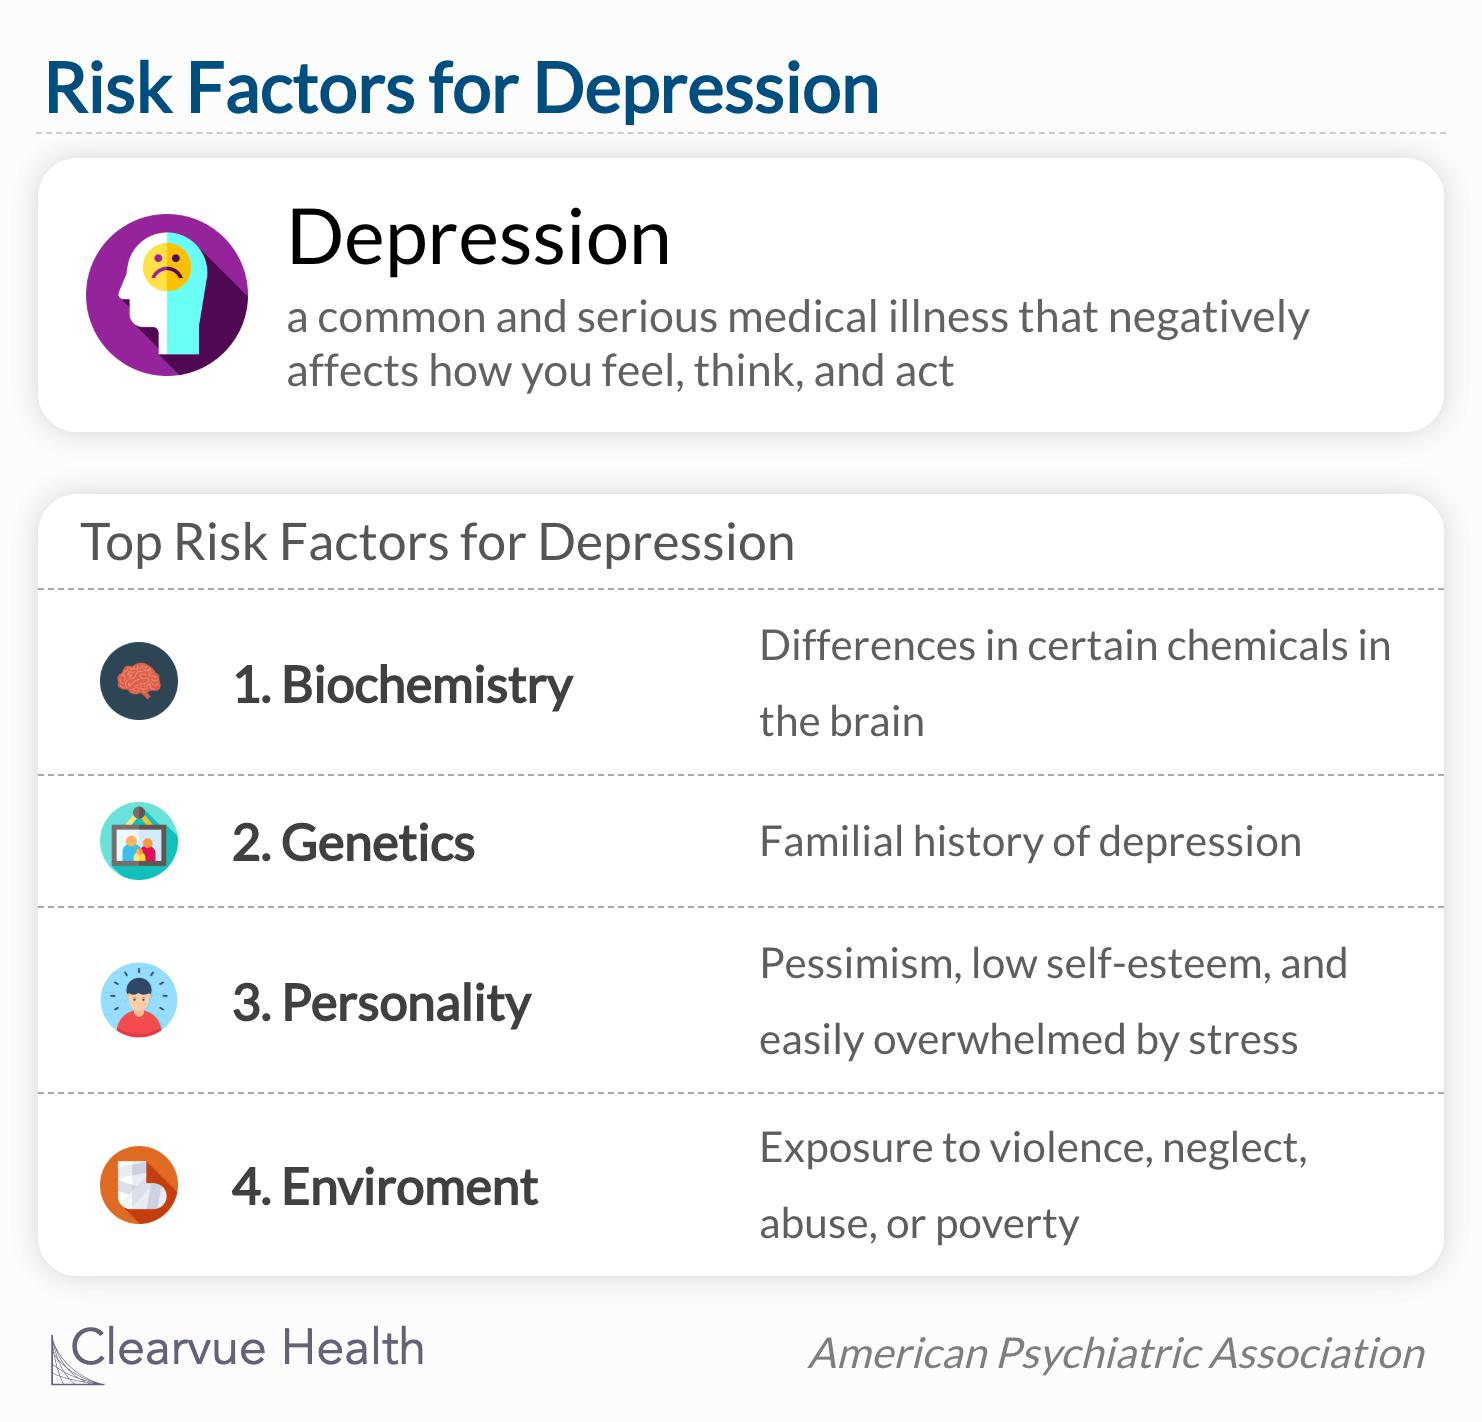 Depression is a common and serious medical illness that negatively affects how you feel, the way you think and how you act.